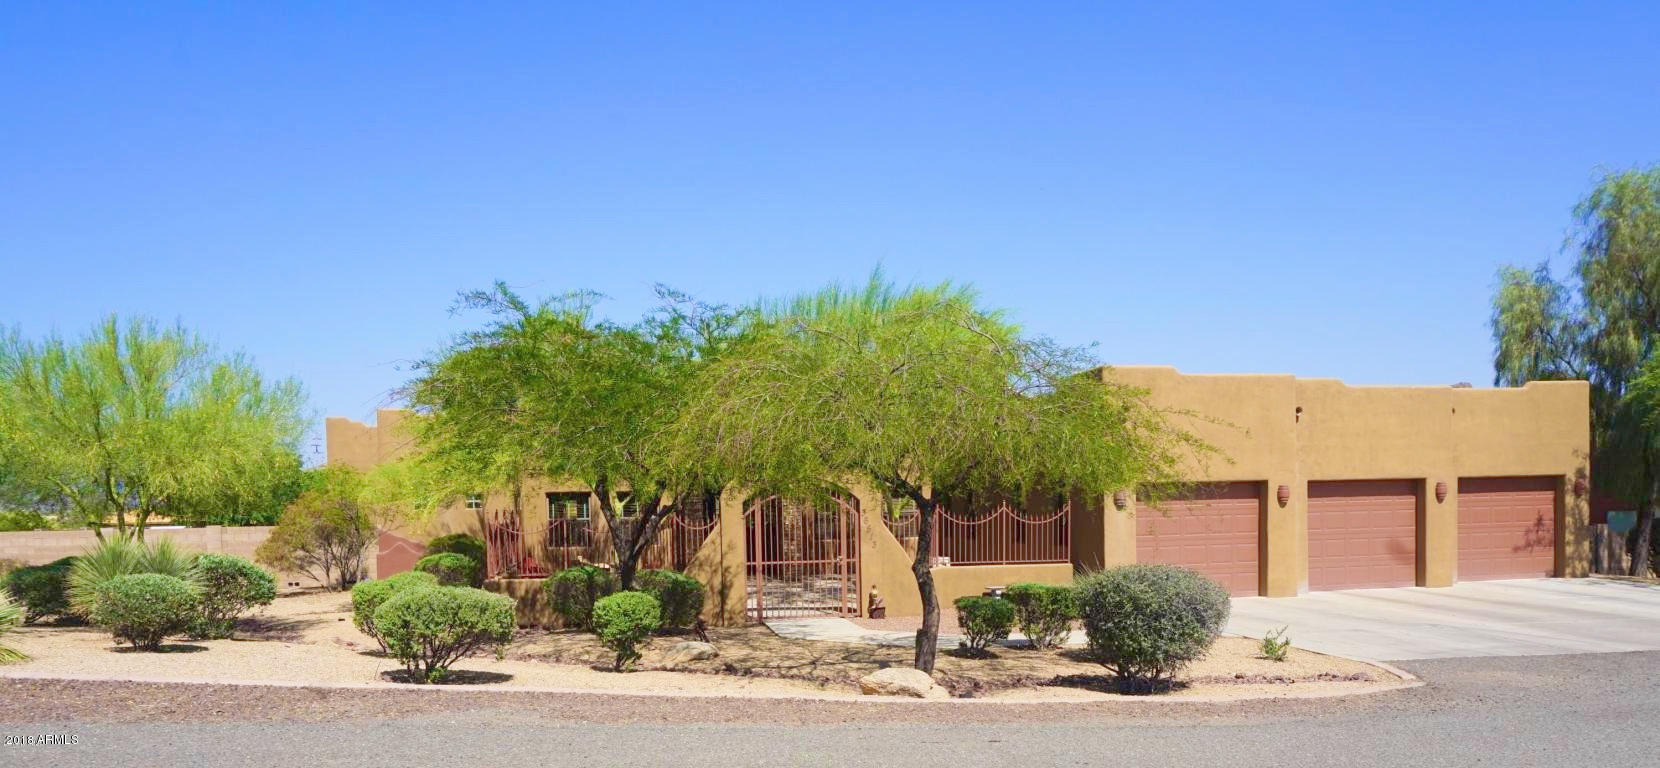 36513 N 29th Lane, Anthem, Arizona